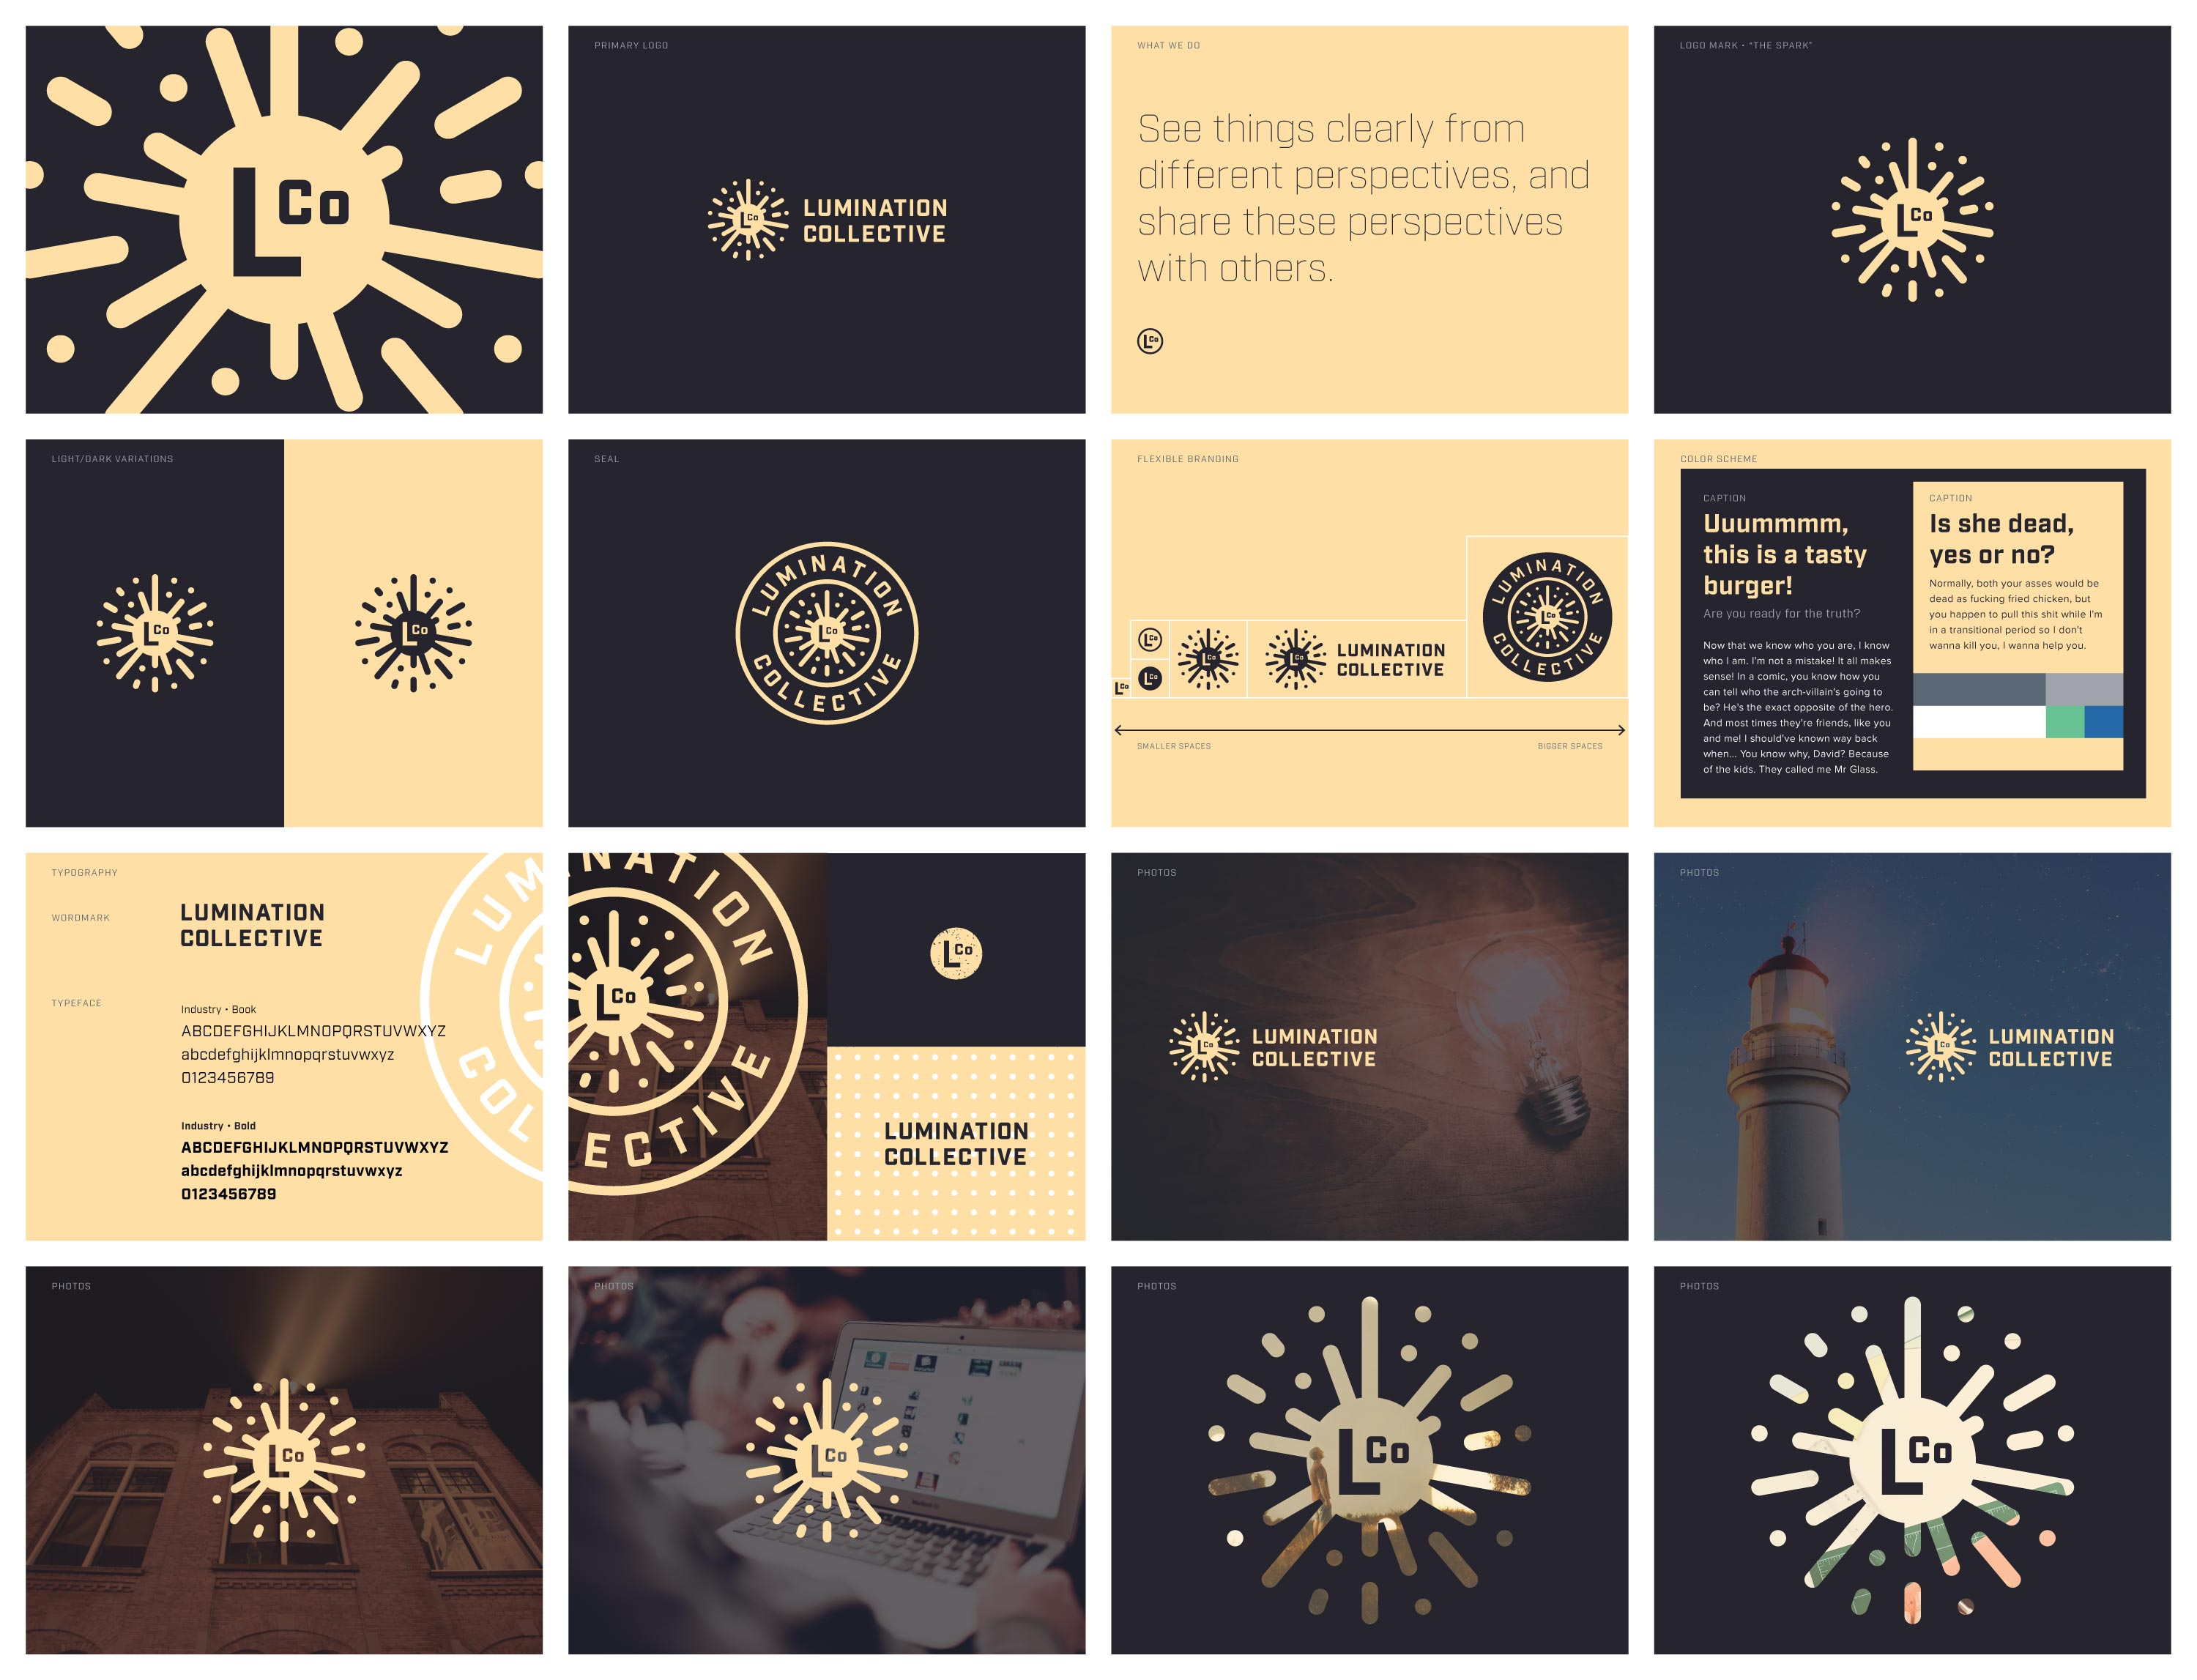 Lumination Collective - Brand Guidelines